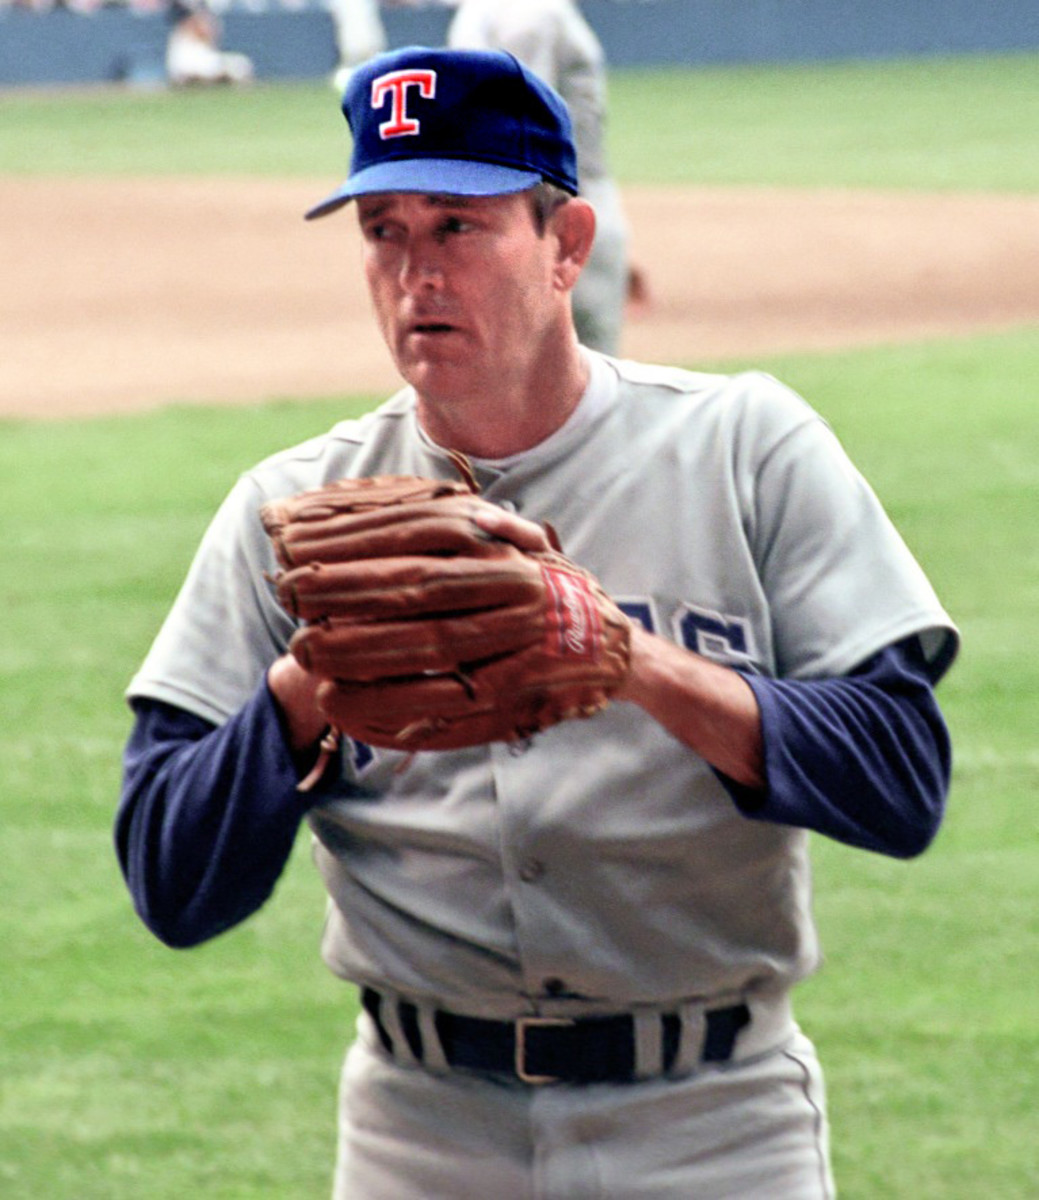 Nolan Ryan was the undisputed king of strikeouts during the 1980s and took that talent to the Texas Rangers for the final season of the decade.